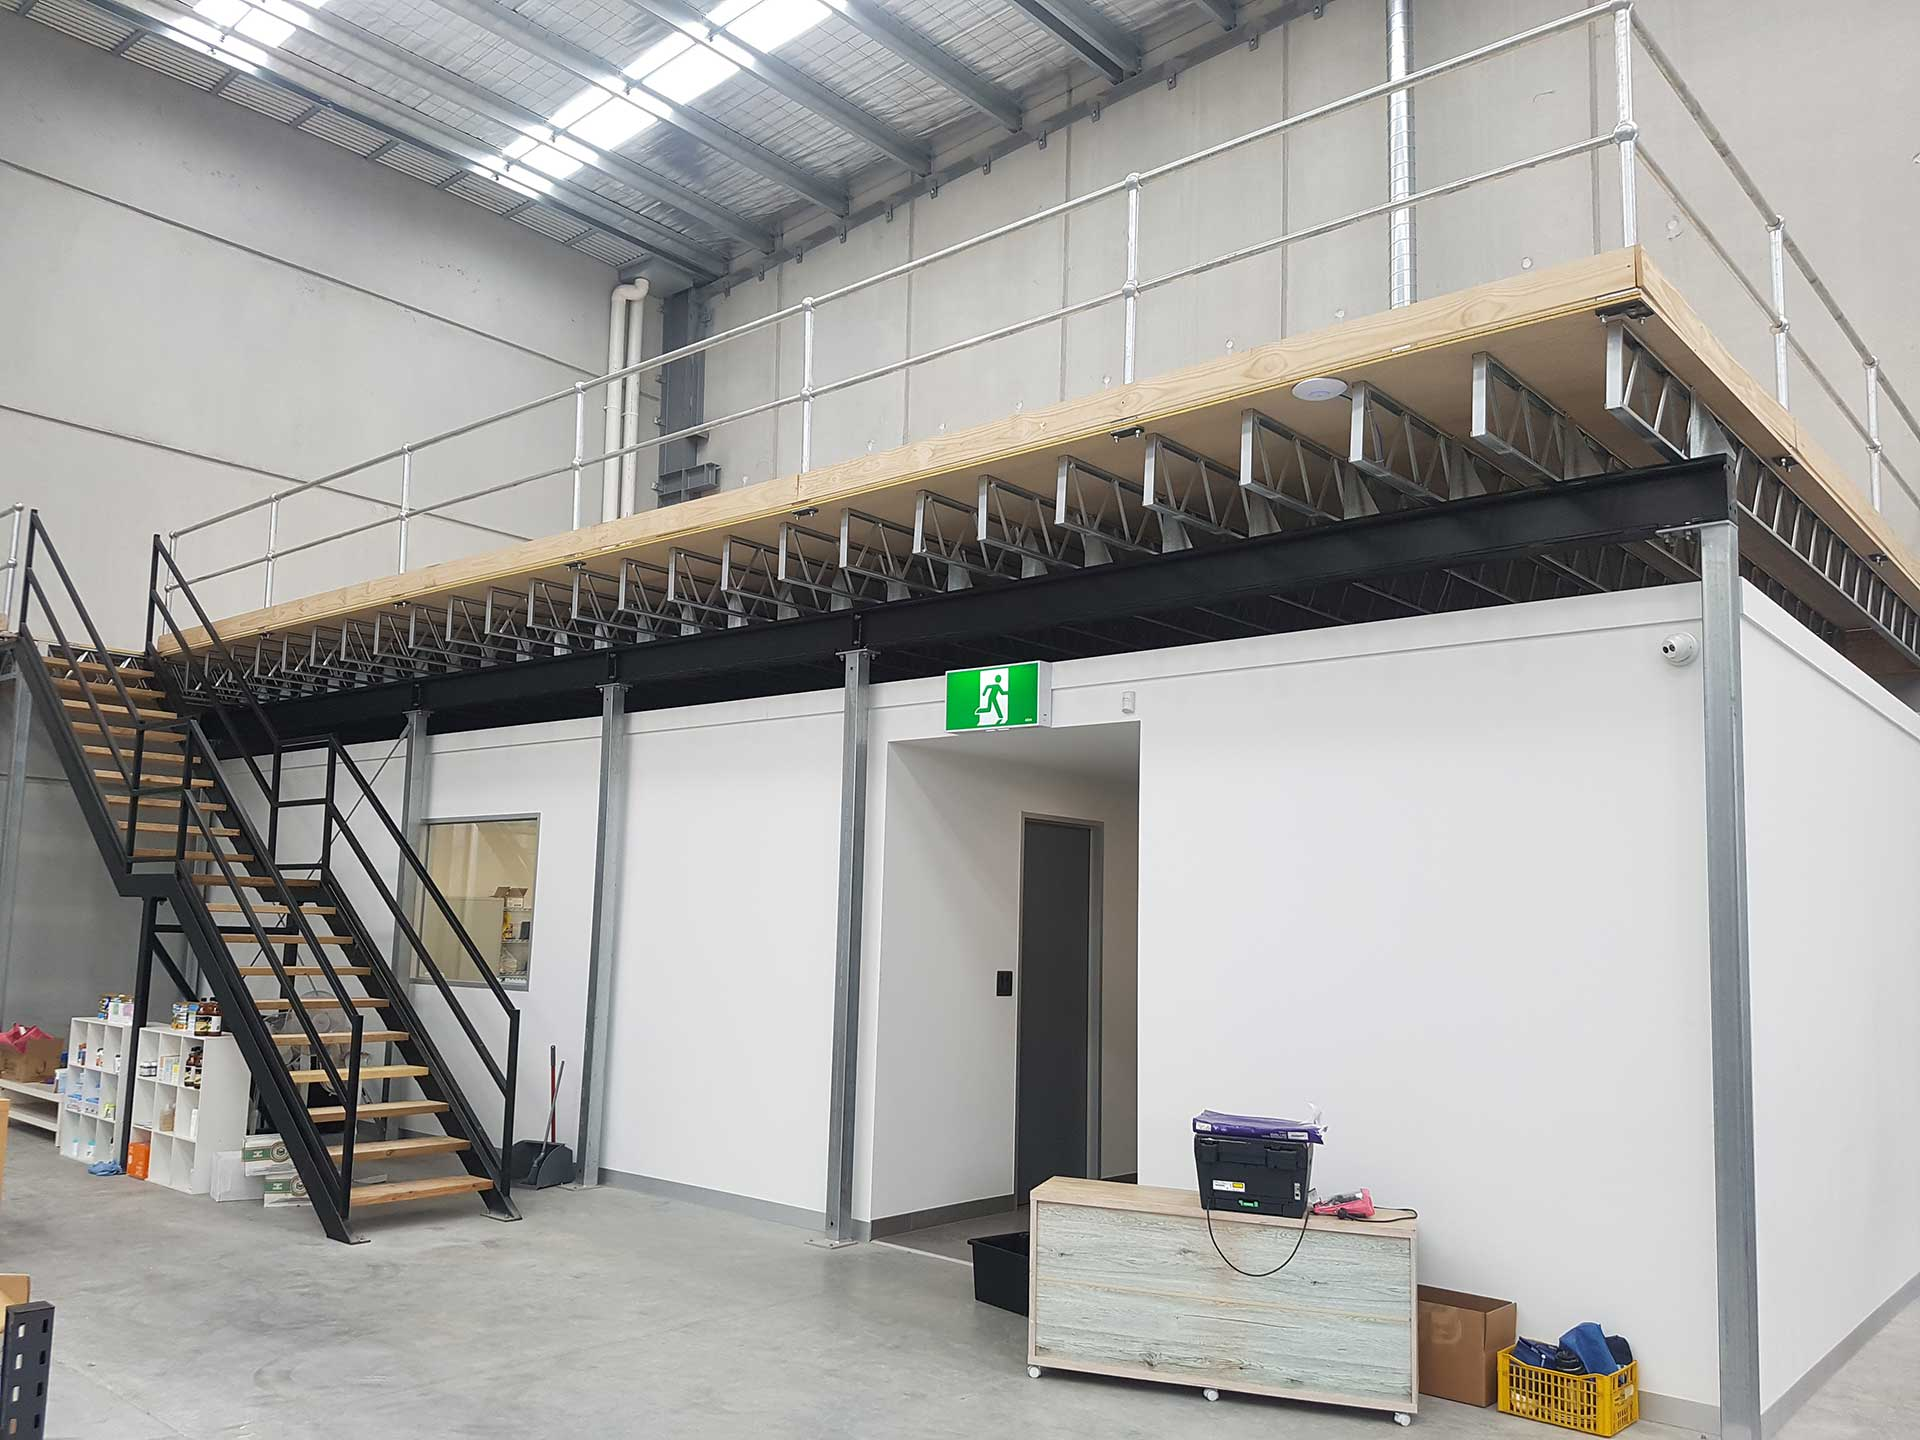 Clearspan Mezzanine Floors